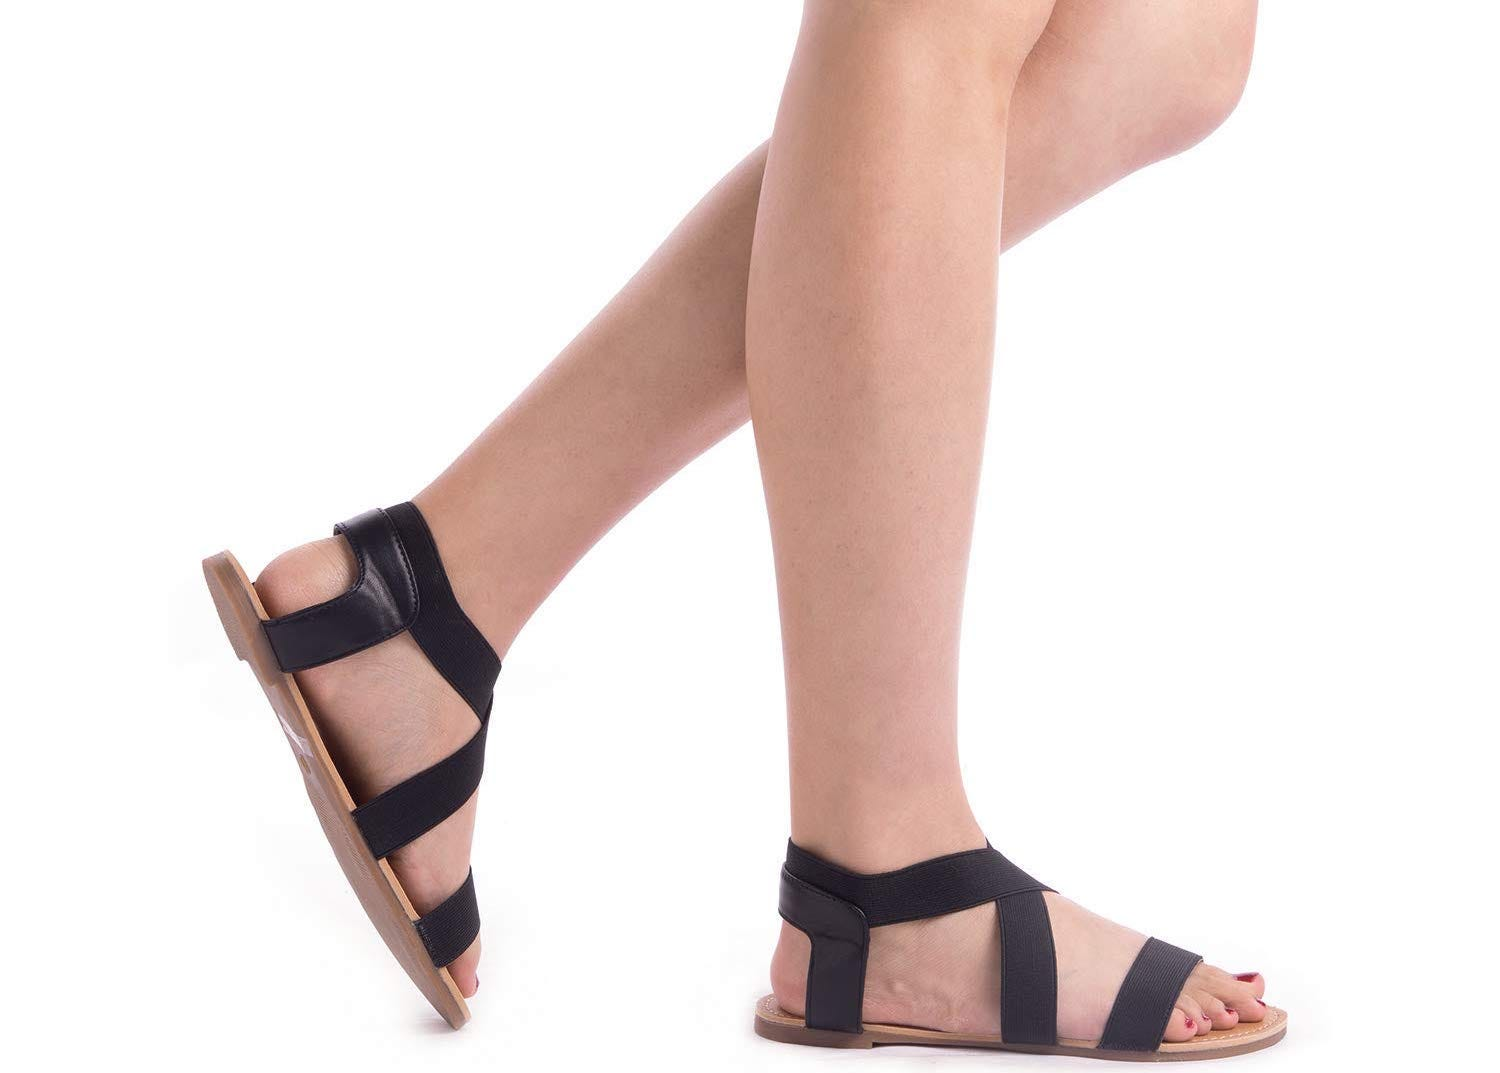 A pair of women's legs wearing black strappy sandals